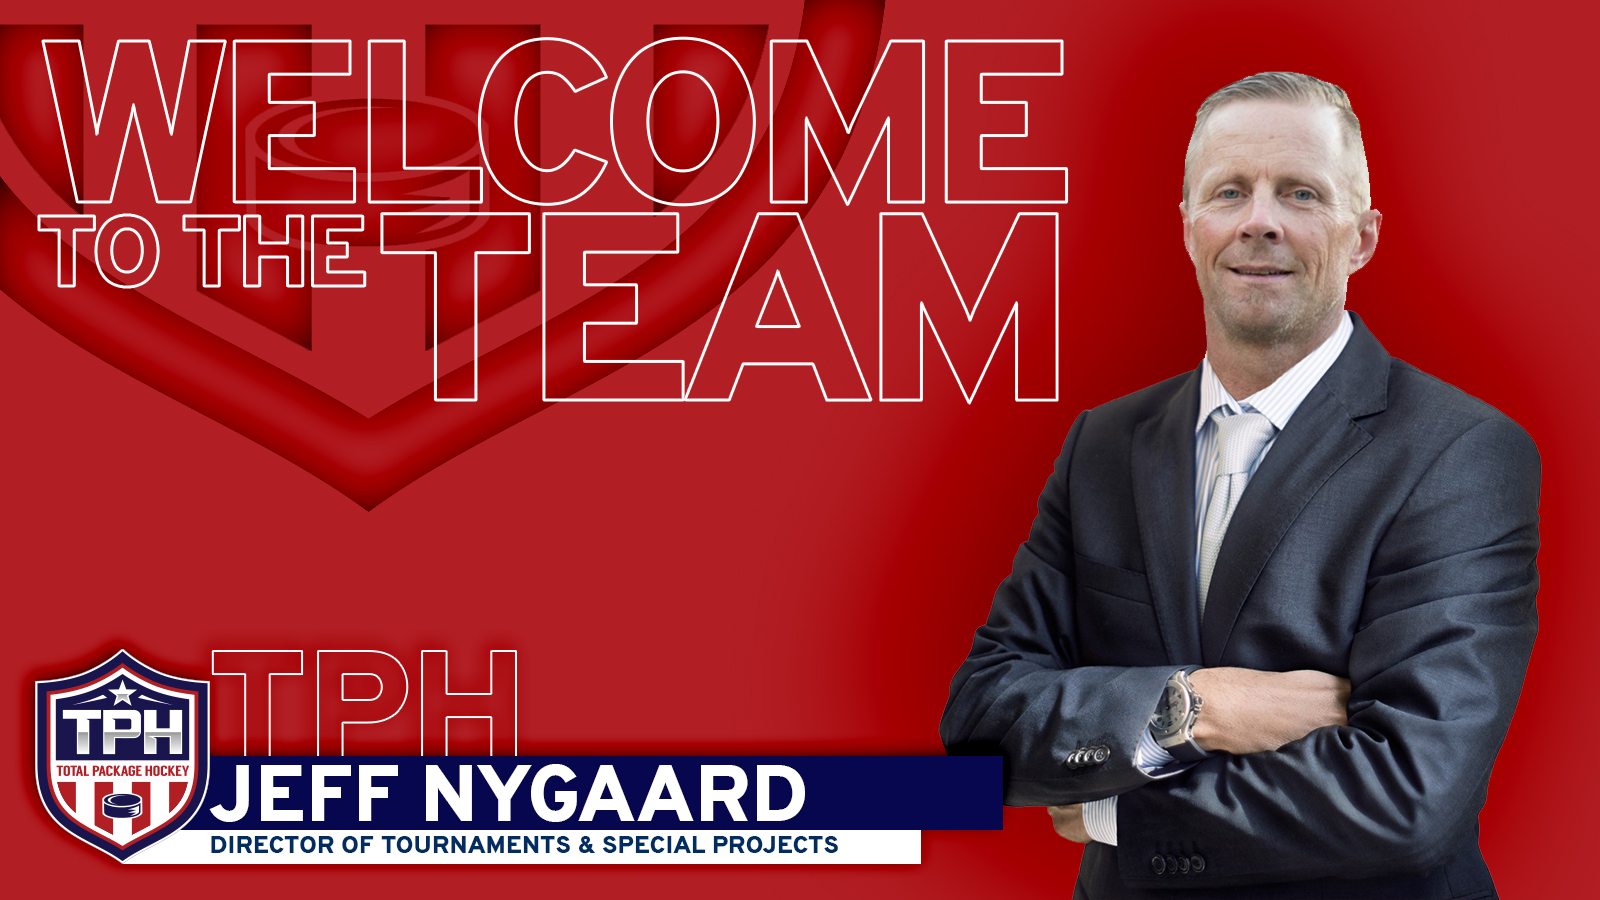 Welcome to the Team - Nygaard